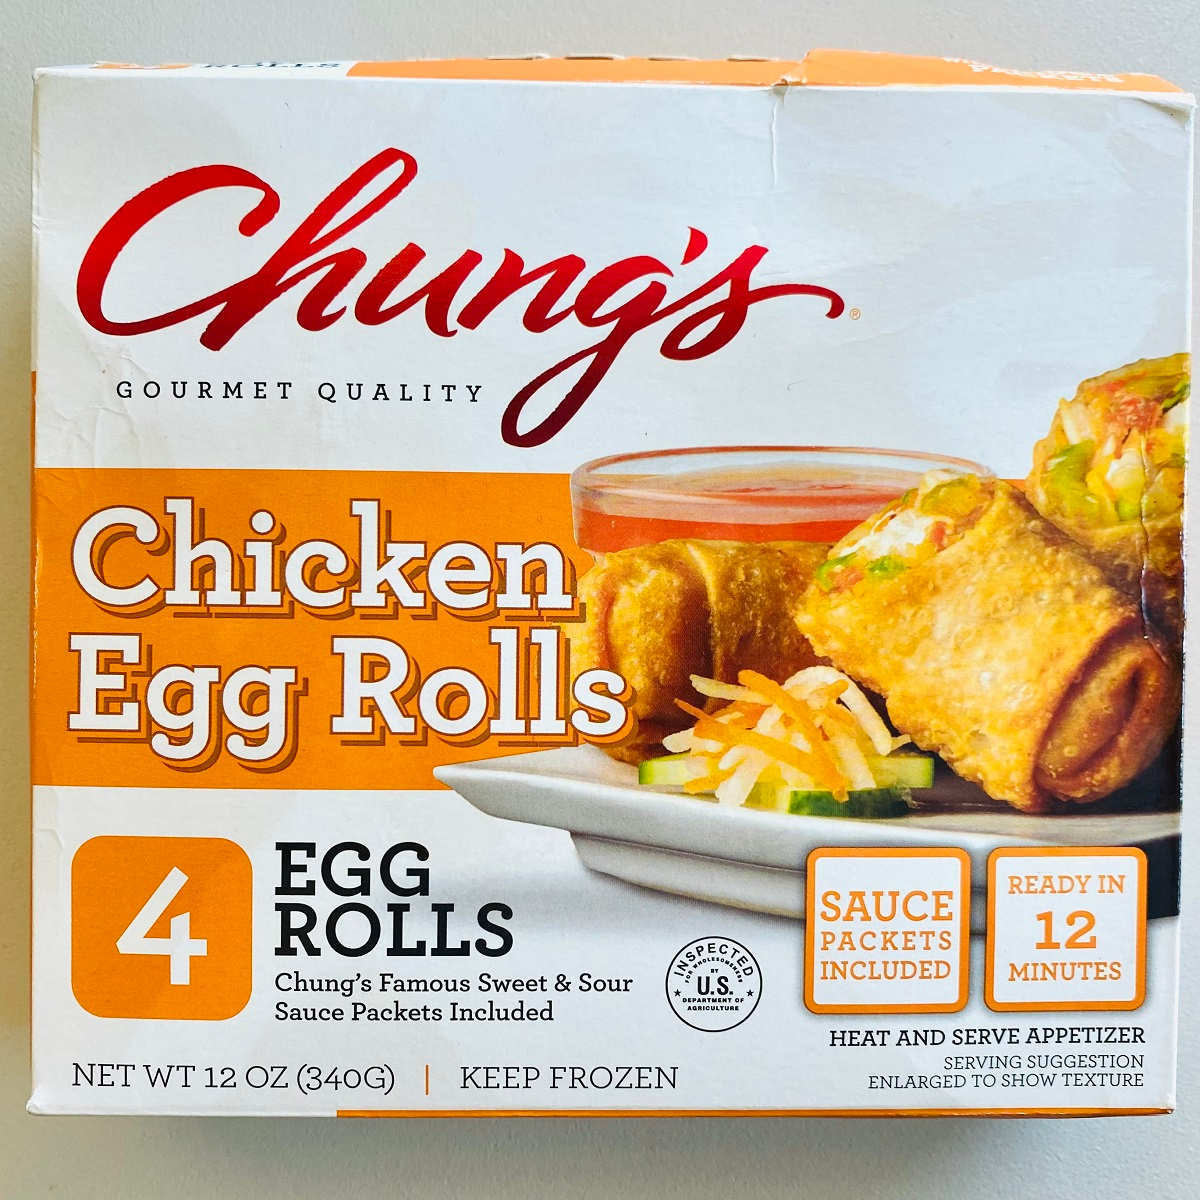 a box of chungs egg rolls to be cooked in air fryer